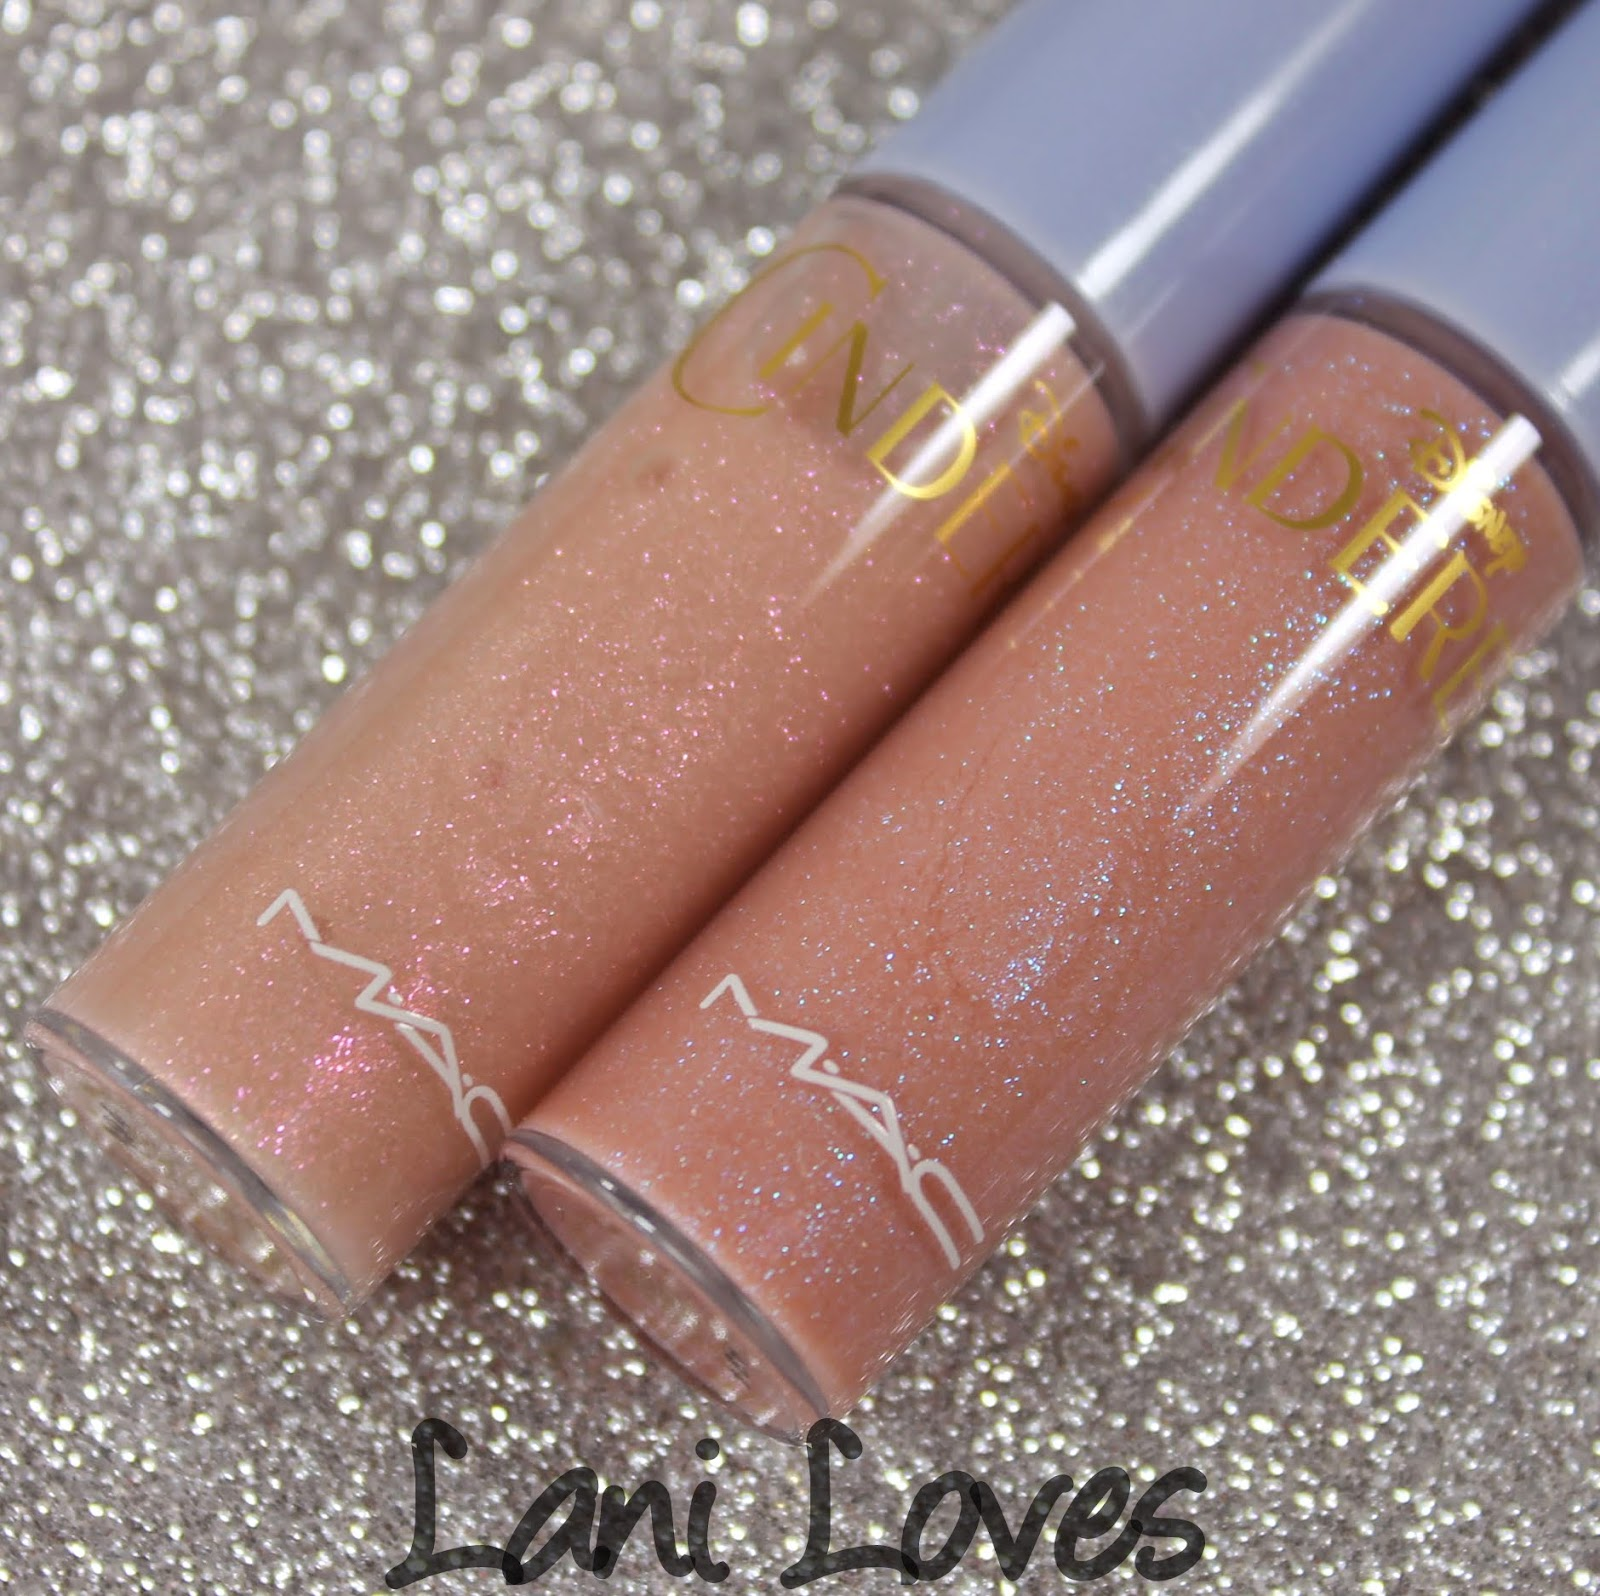 MAC Cinderella: Happily Ever After & Glass Slipper Lipglass Swatches & Review